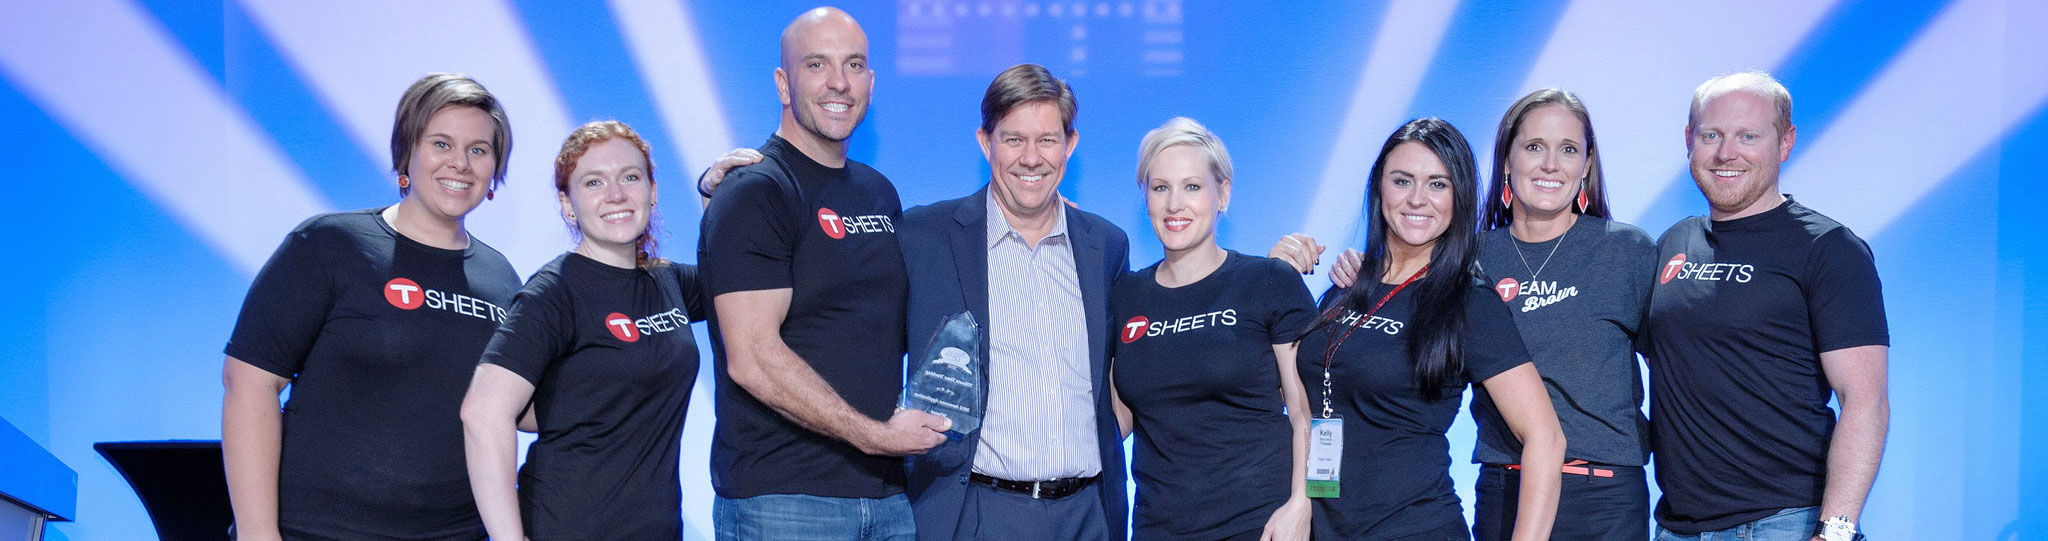 TSheets CEO Matt Rissell and team with 2015 Sleeter Group Awesome Application award